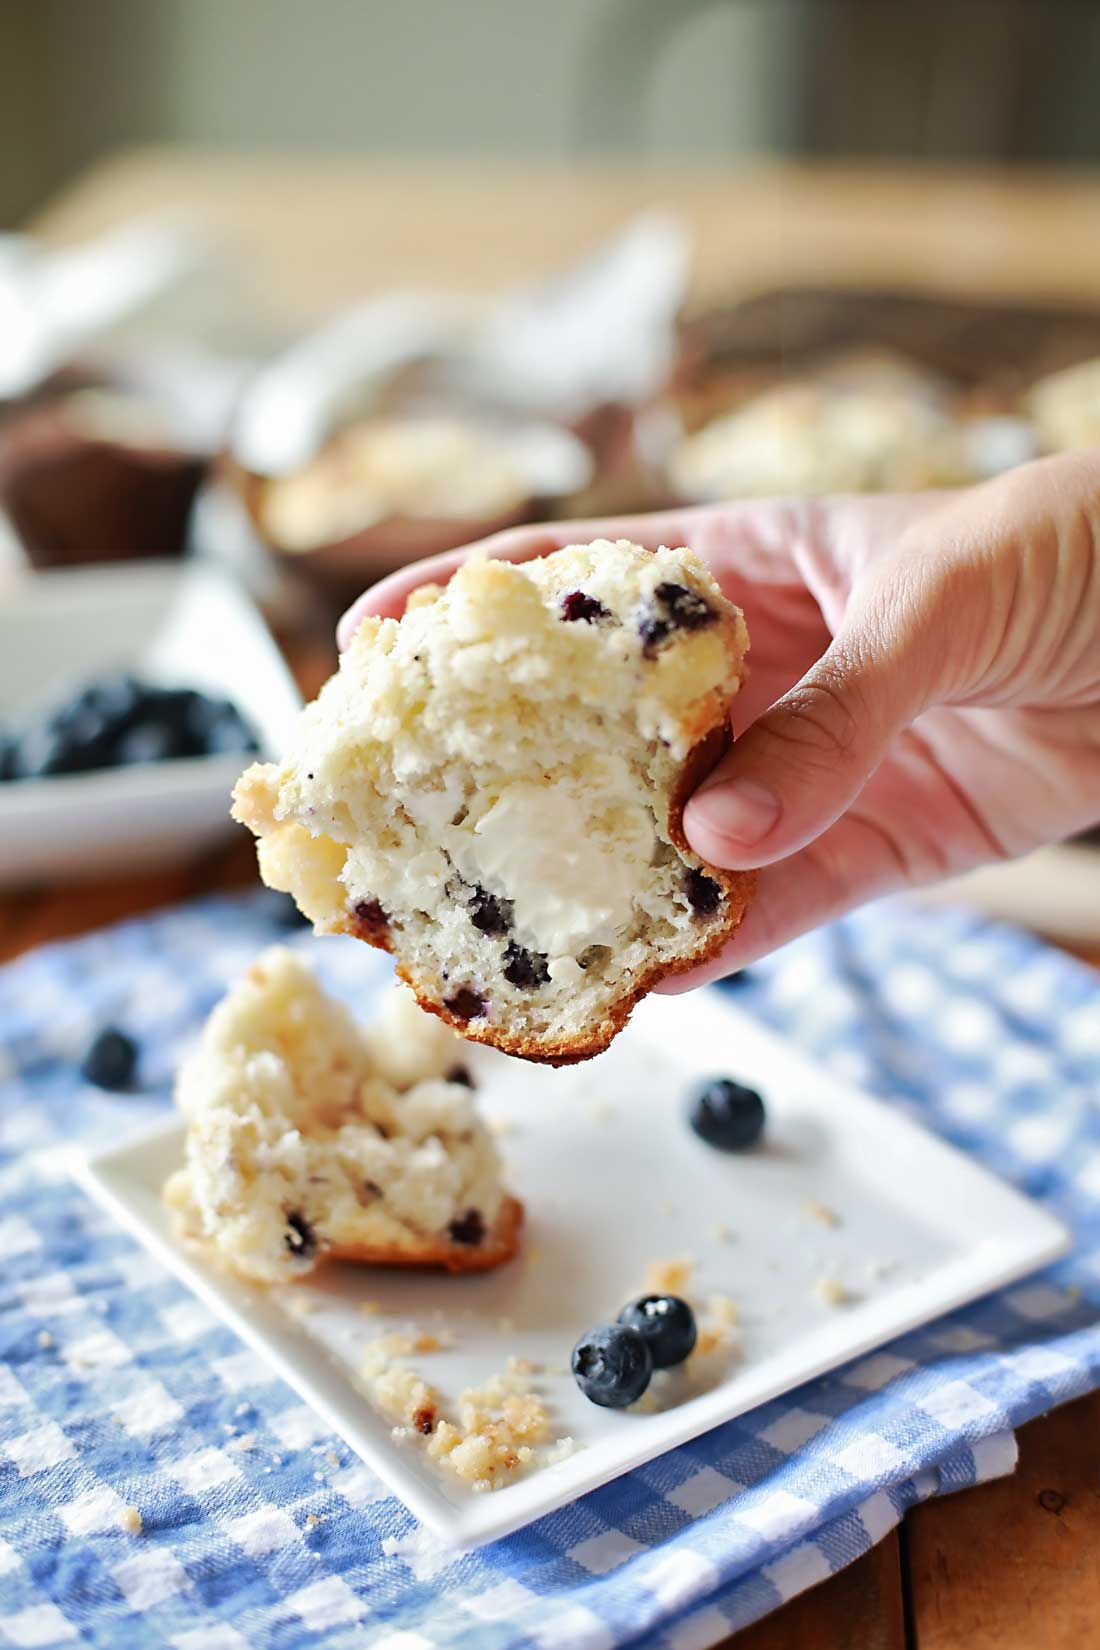 Cream Cheese and Blueberries Streusel topped Muffins that taste SOOOO GREAT!